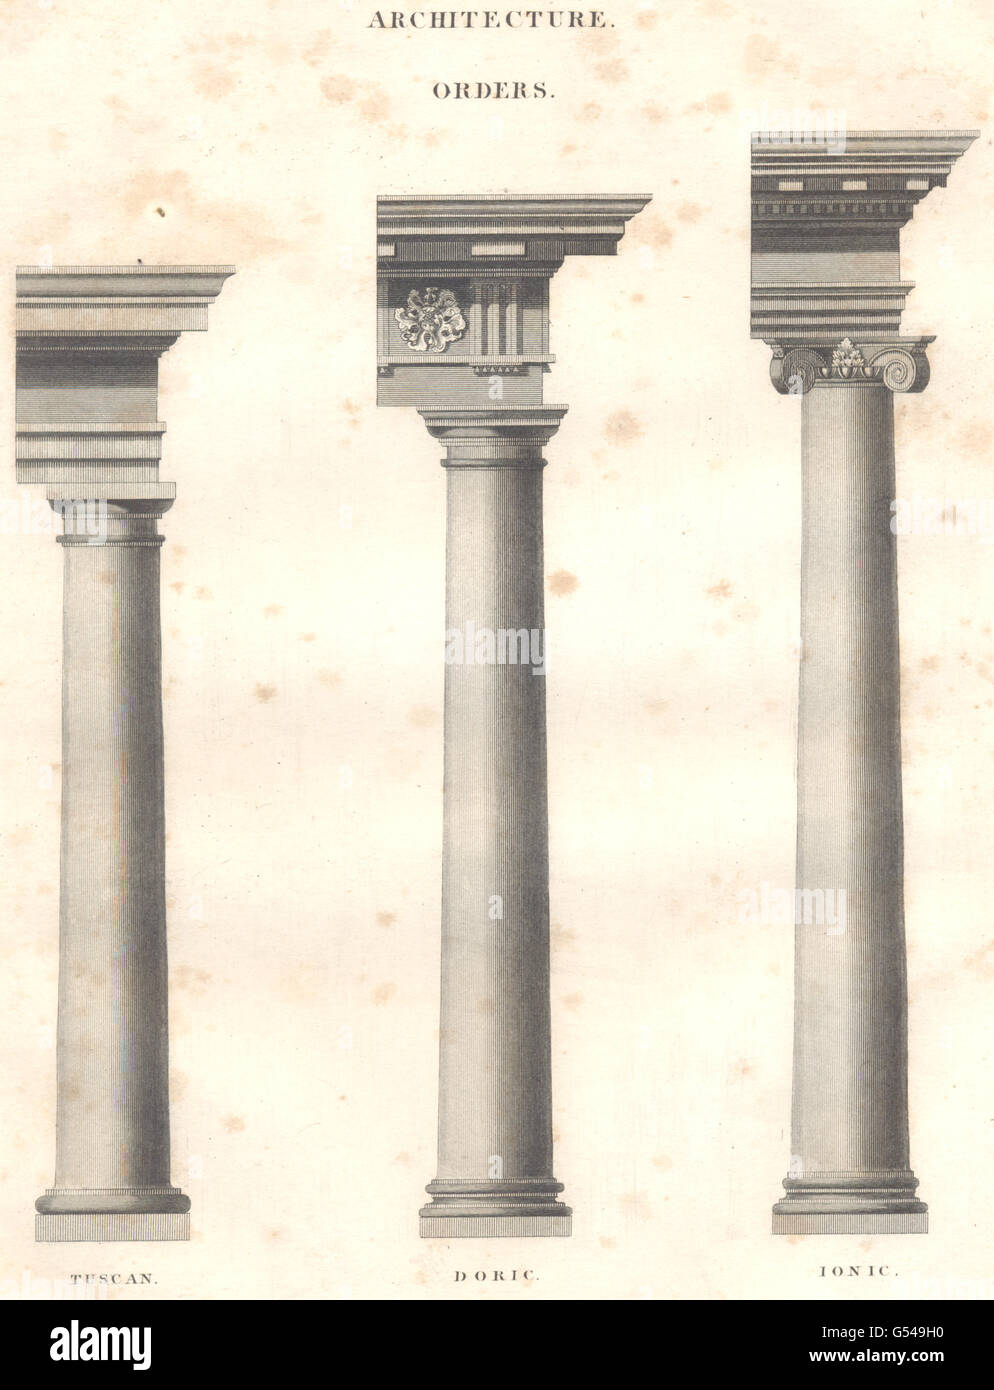 ARCHITECTURE ORDERS Tuscan Doric Ionic Columns Oxford Encyclopaedia 1830